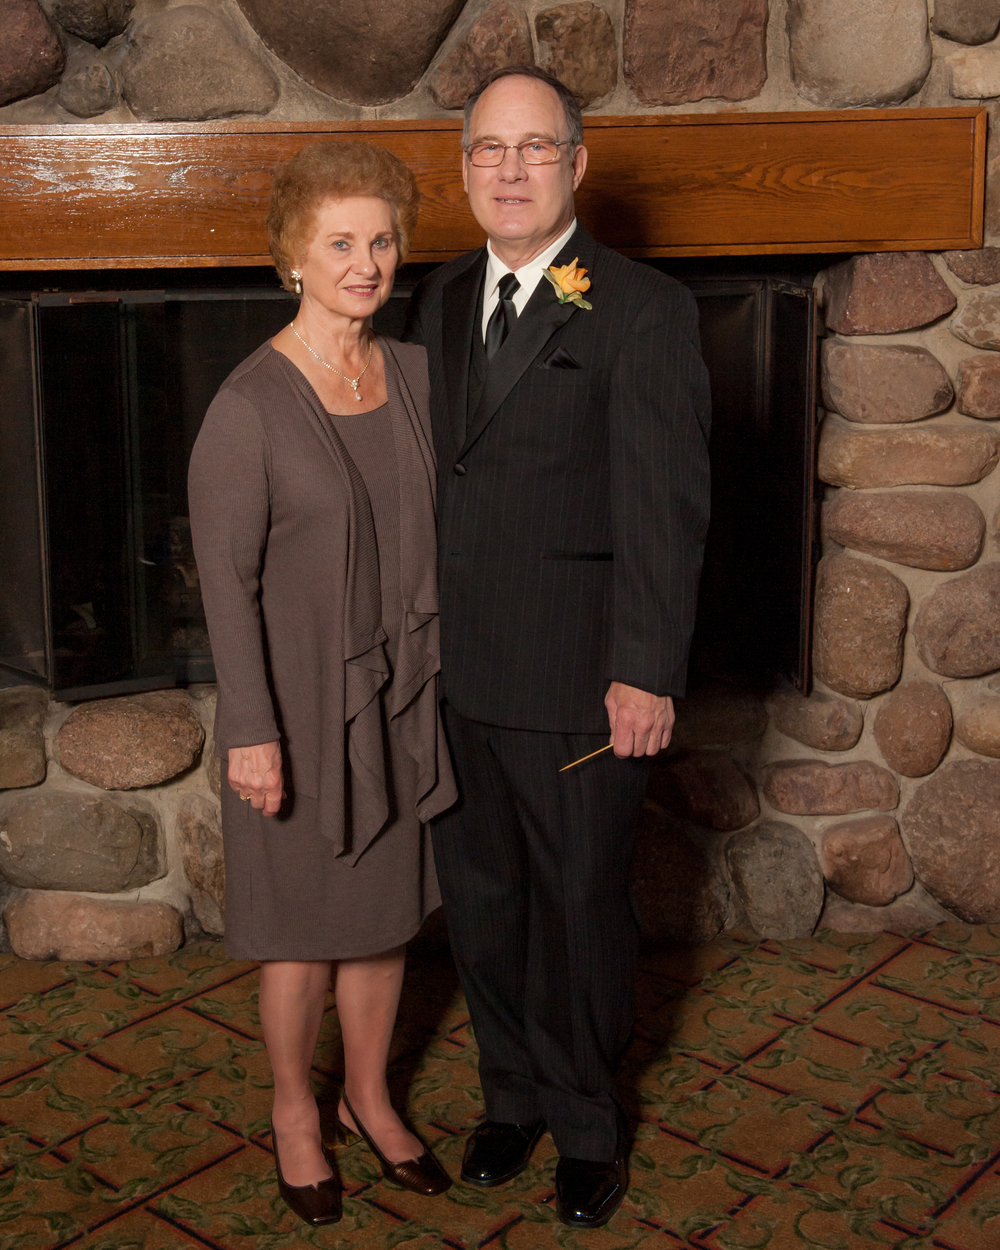 Johnson Wedding (175 of 260).jpg